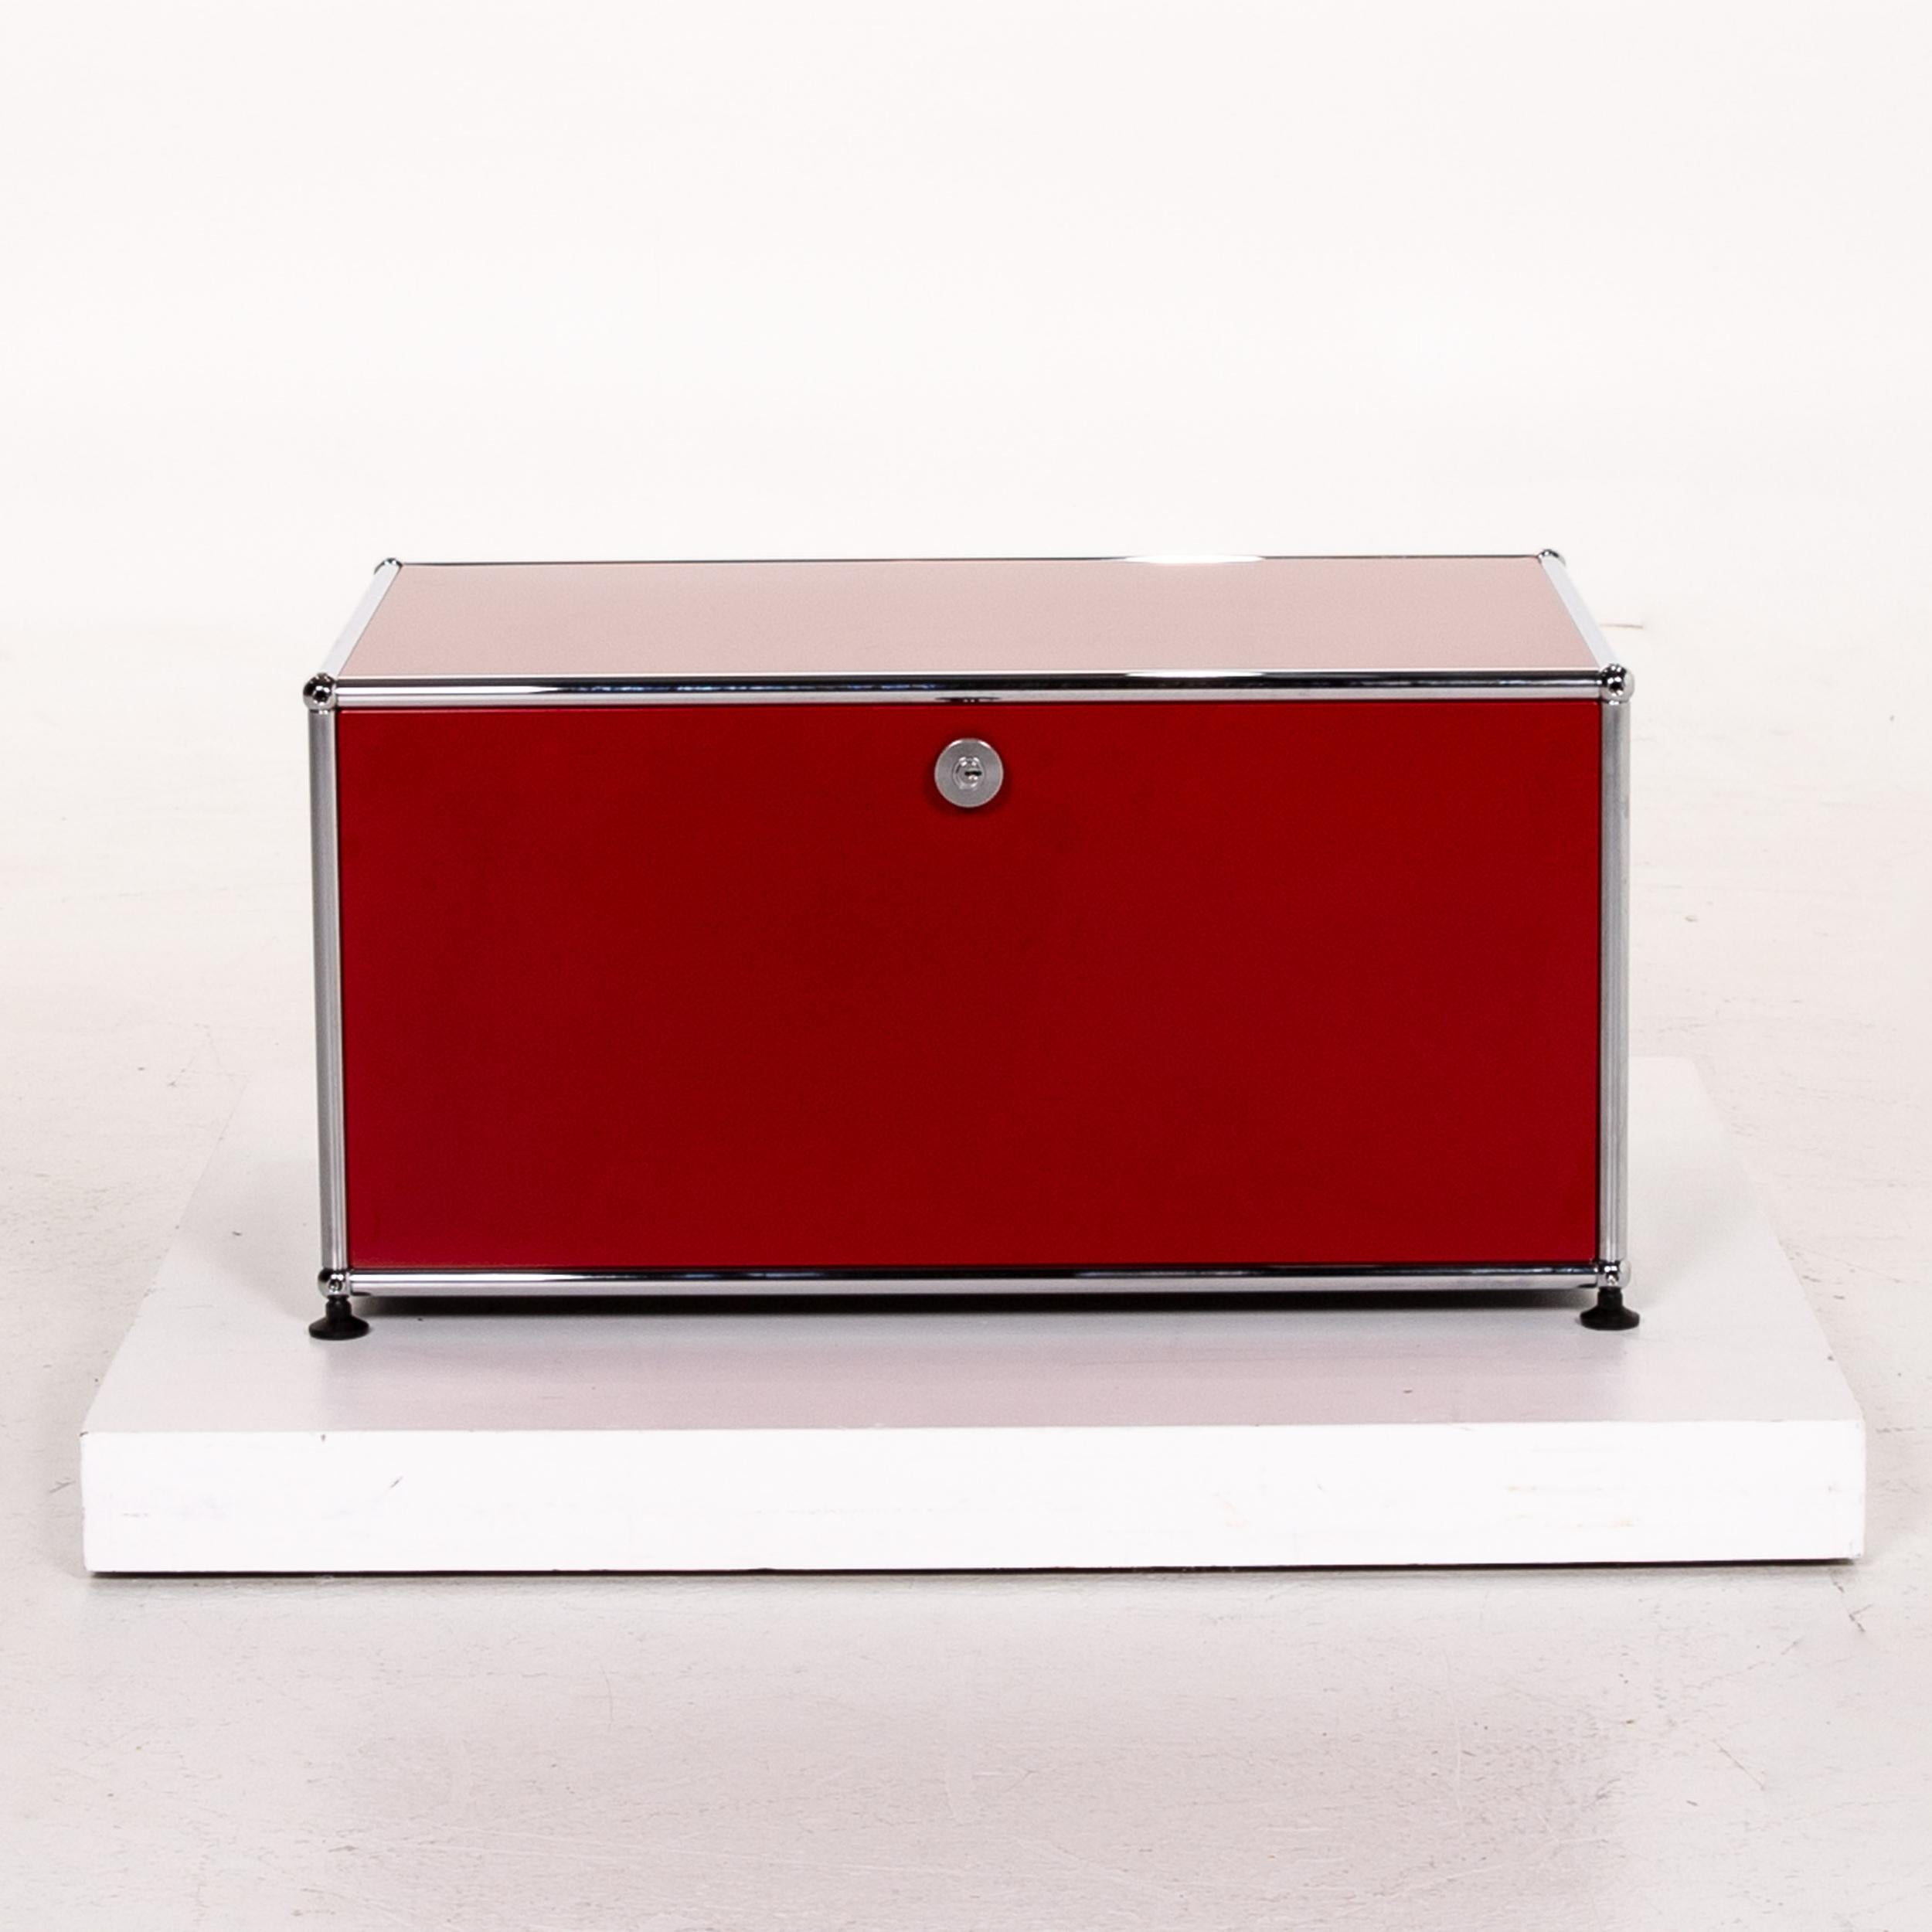 Usm Haller Metal Lowboard Red Sideboard Container Chrome Office For Sale At 1stdibs